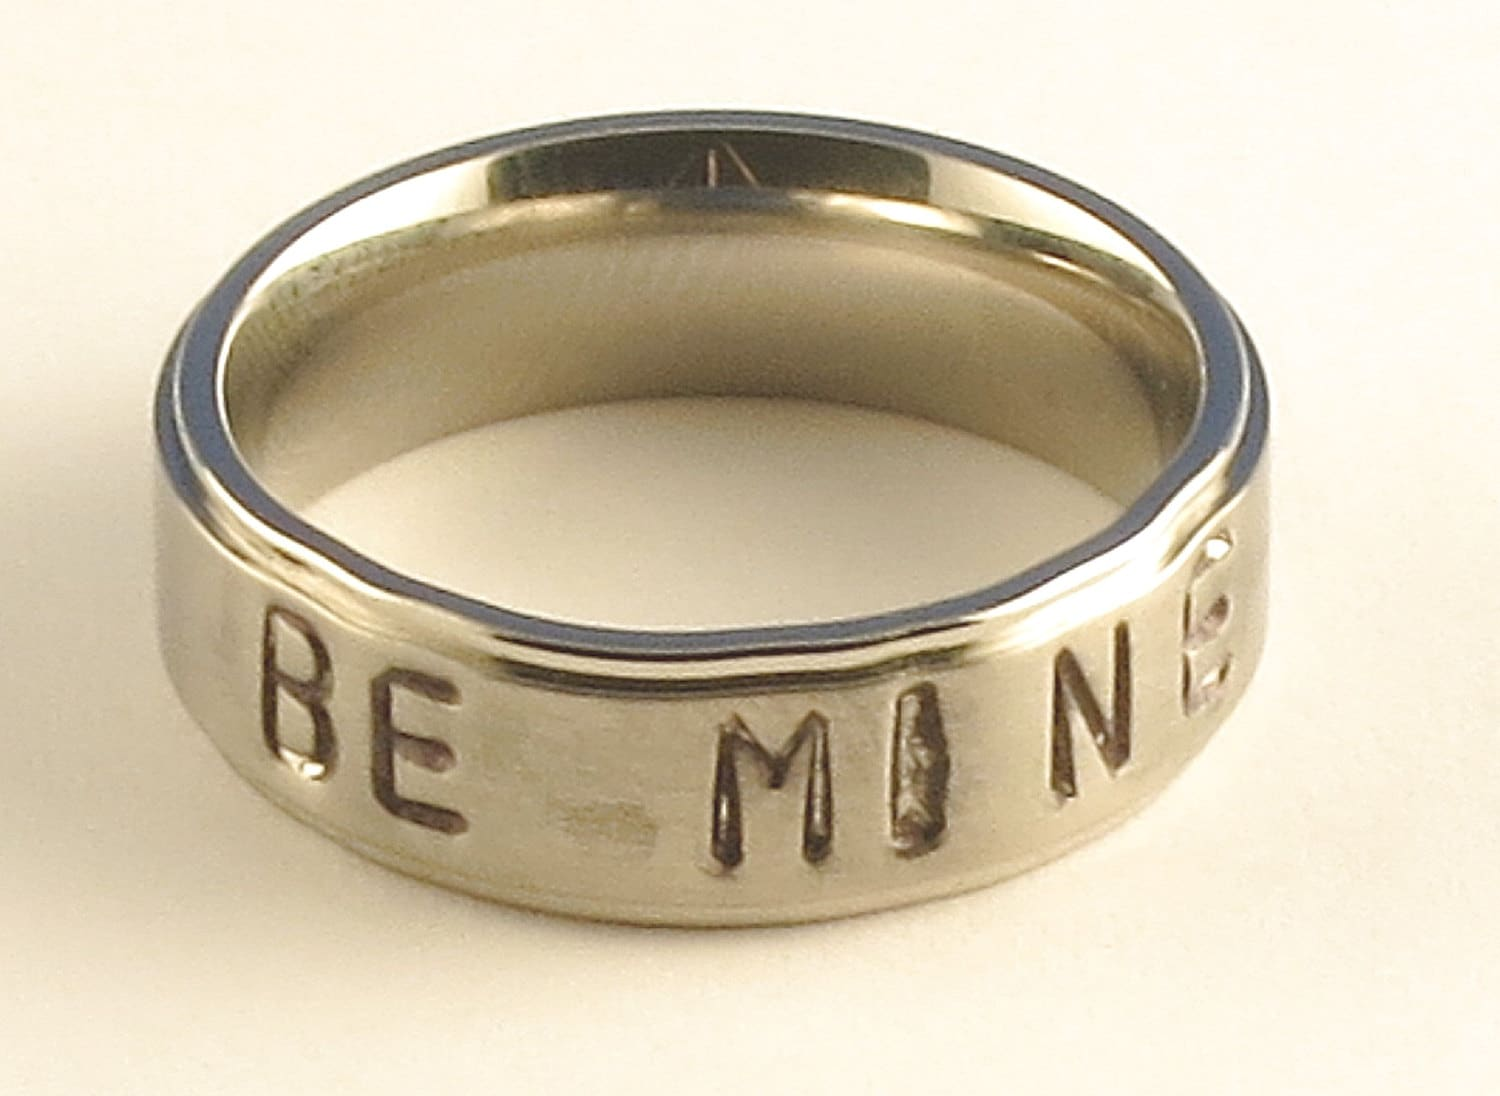 BE MINE Stainless Steel Tri-Band Brushed Flat Comfort Fit Name Ring 6mm